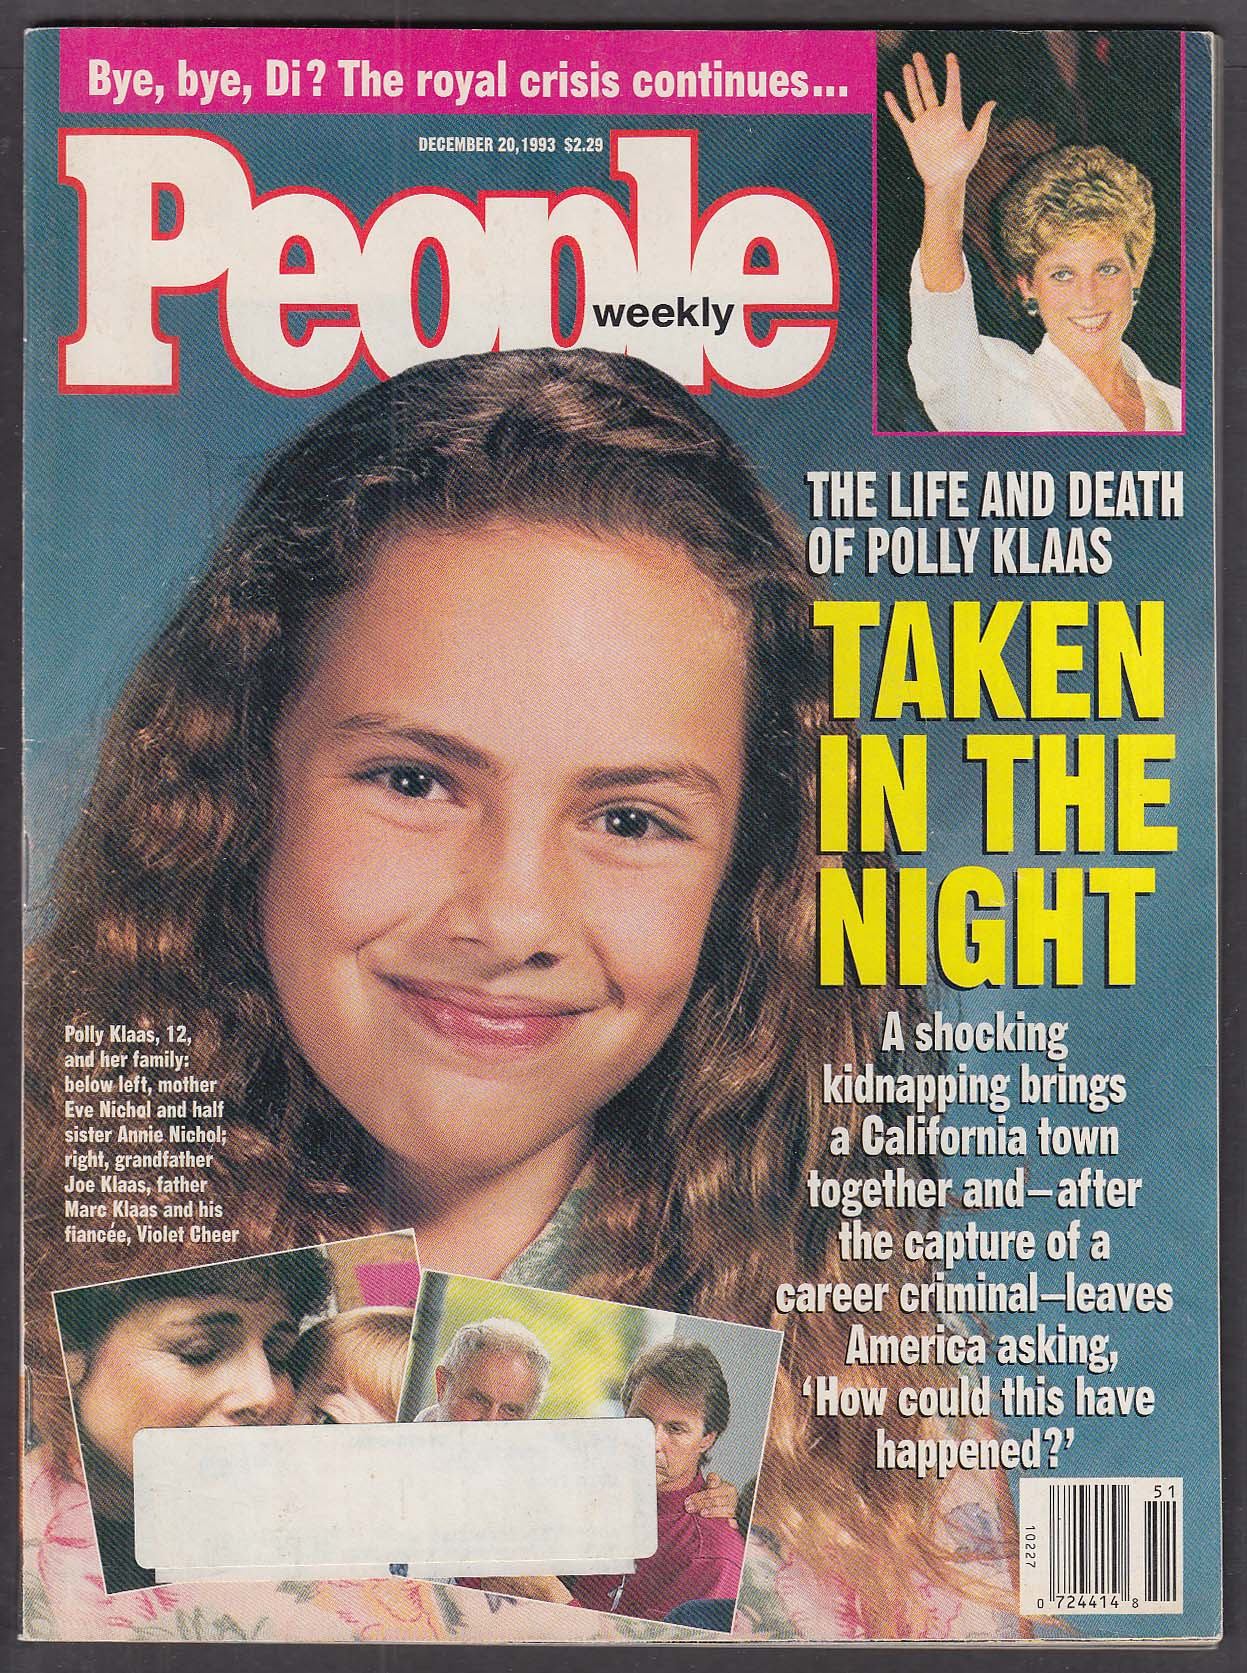 PEOPLE Weekly Princess Diana Polly Klaas ++ 12/20 1993